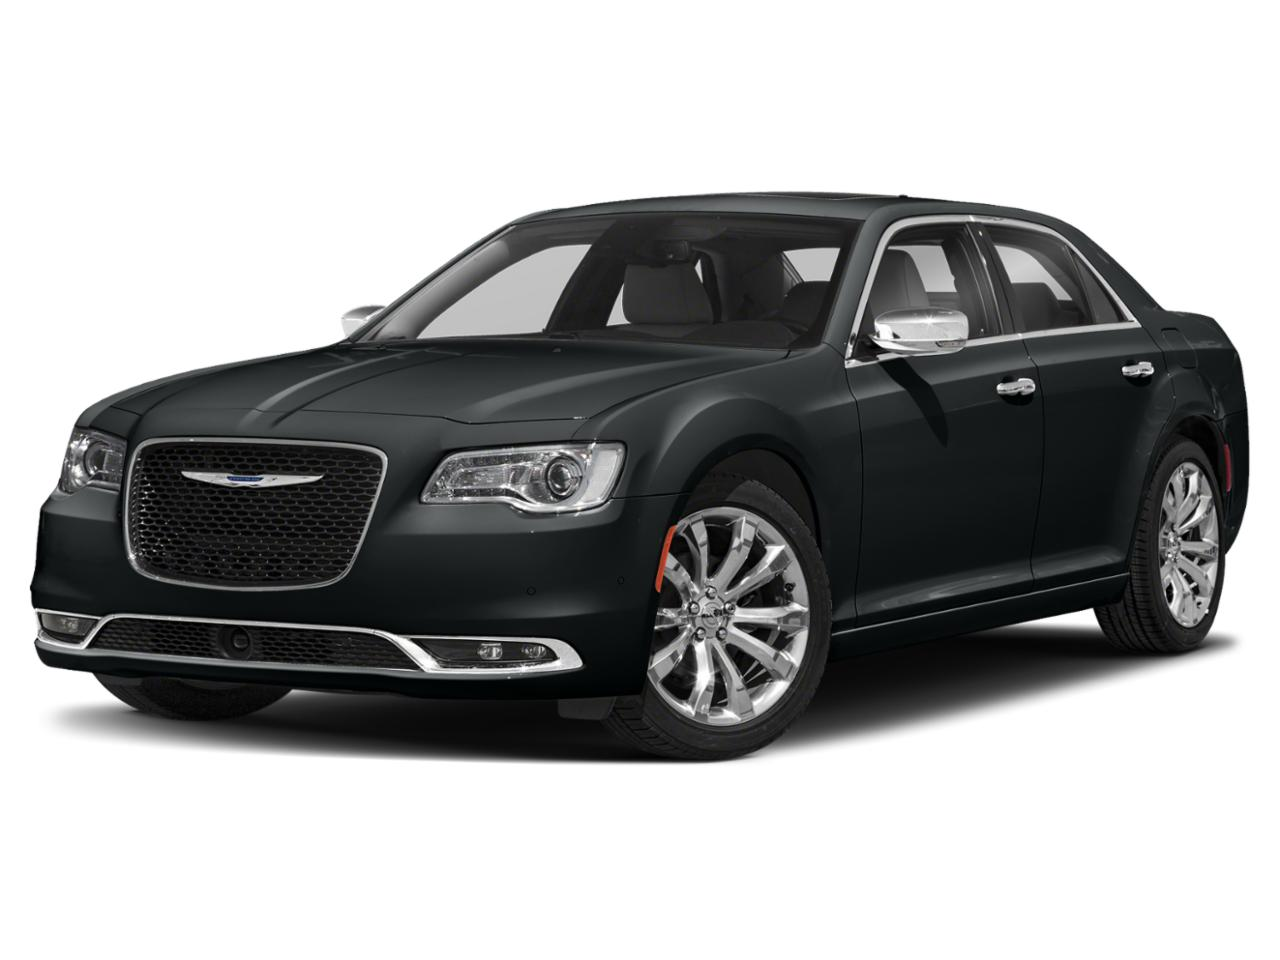 2019 Chrysler 300 Vehicle Photo in BUFORD, GA 30518